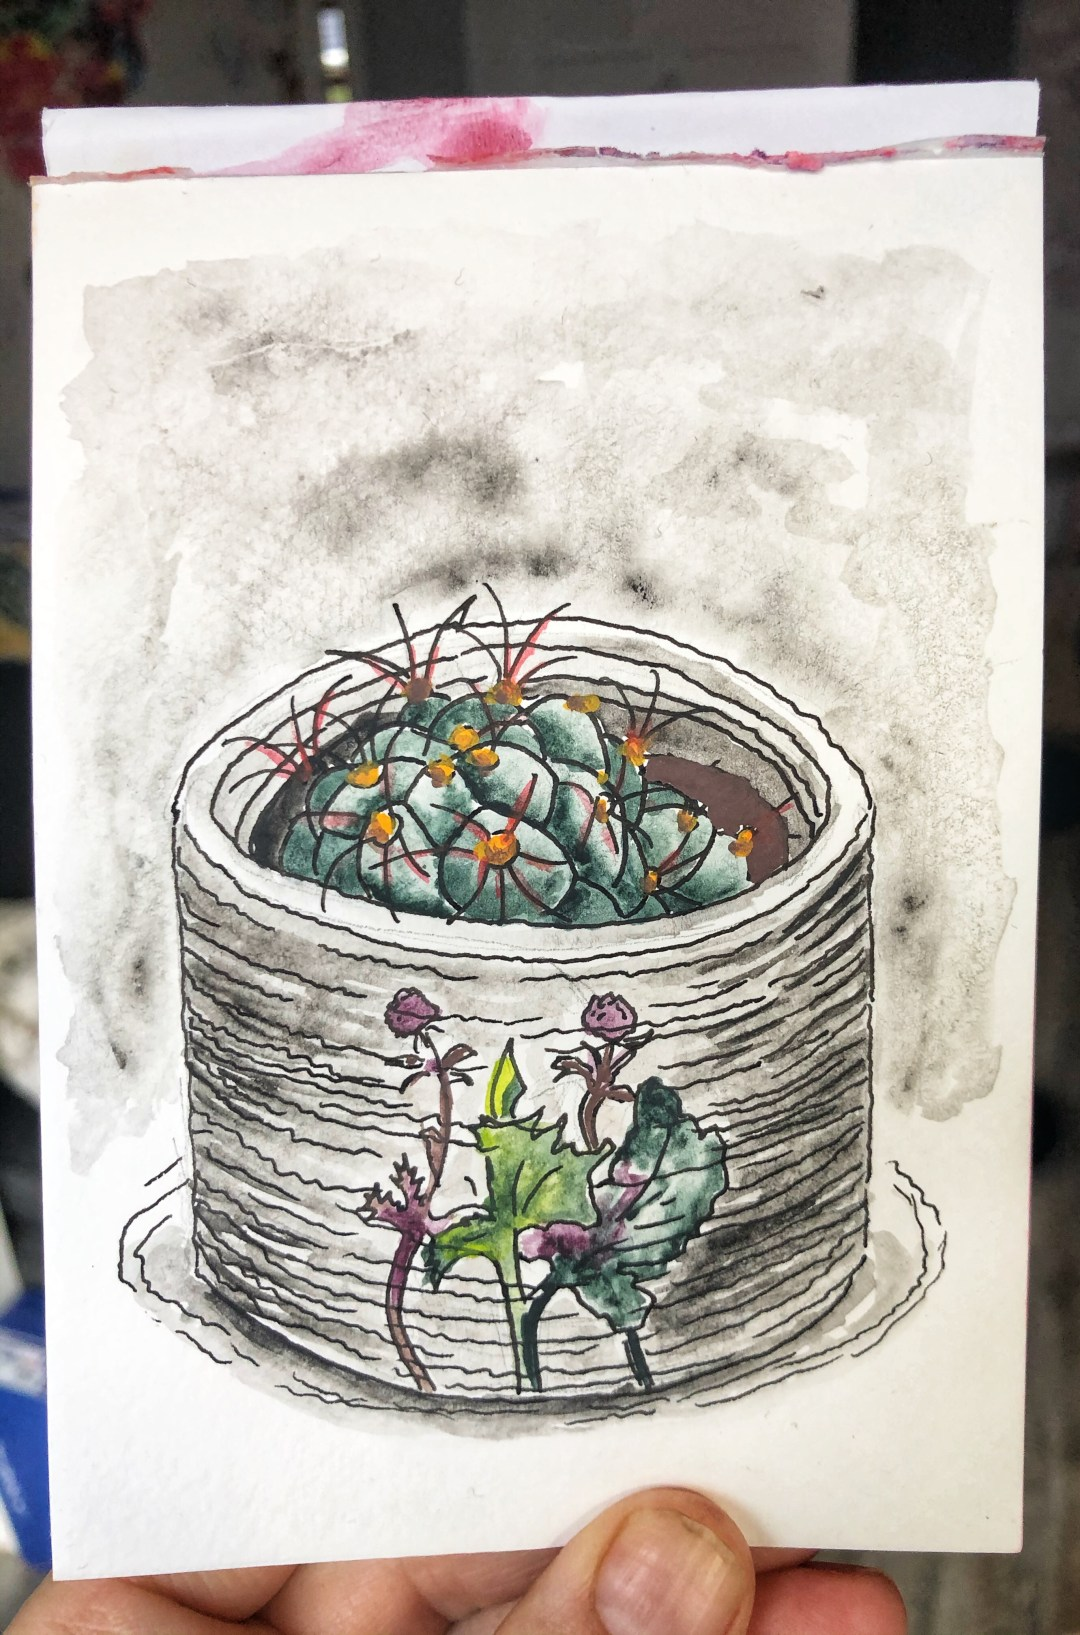 Cactus in a pot. Illustration.